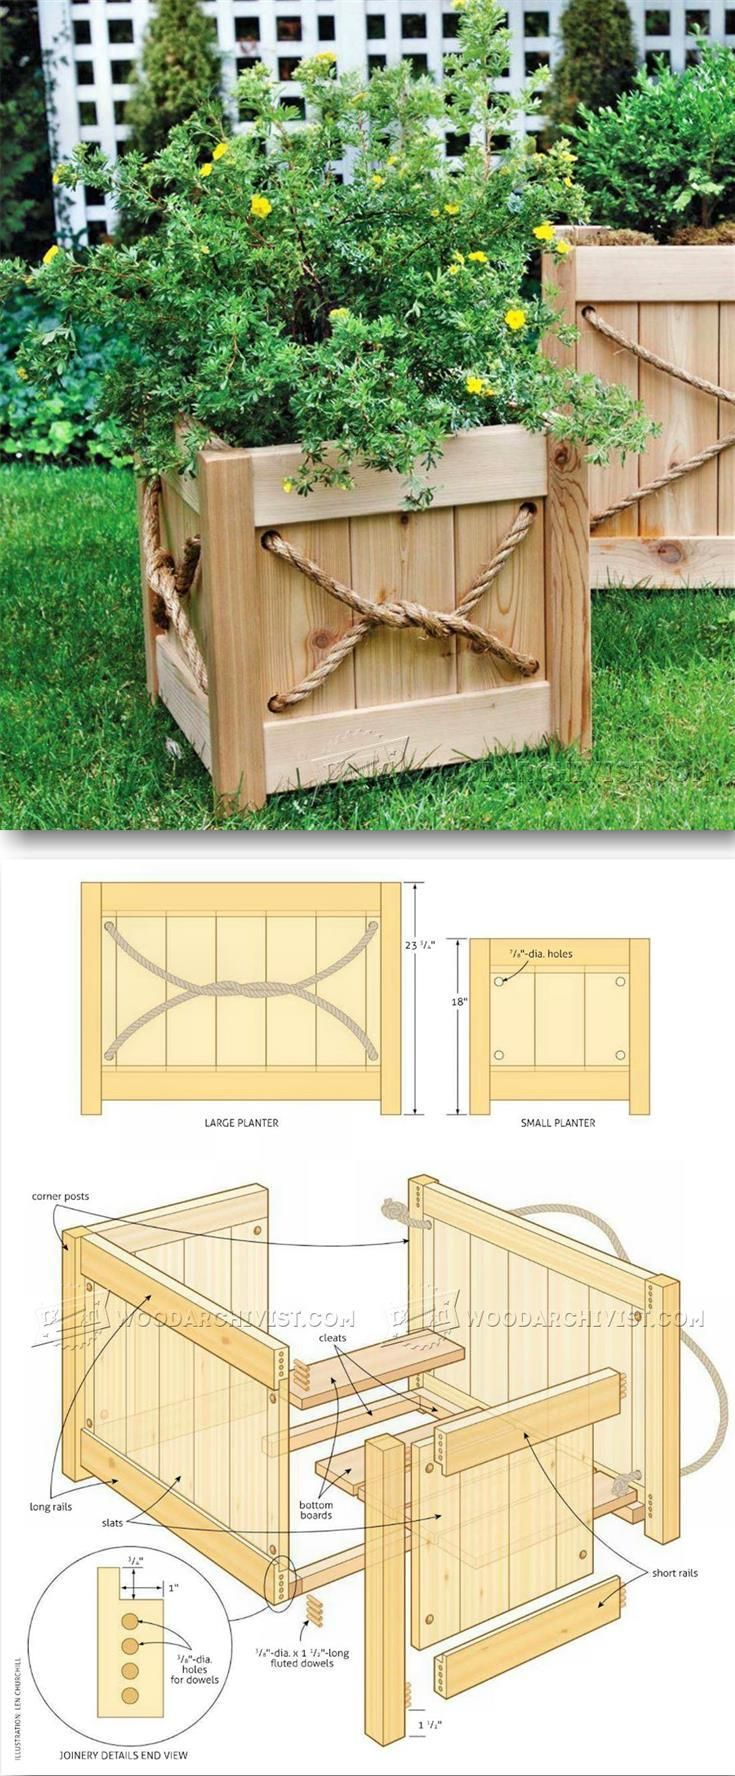 cedar wood projects Why real cedar for outdoor projects imagine creating your own outdoor sanctuary real cedar is a solid choice for building an outdoor cover (think pergola) that feels like a graceful extension of your home.